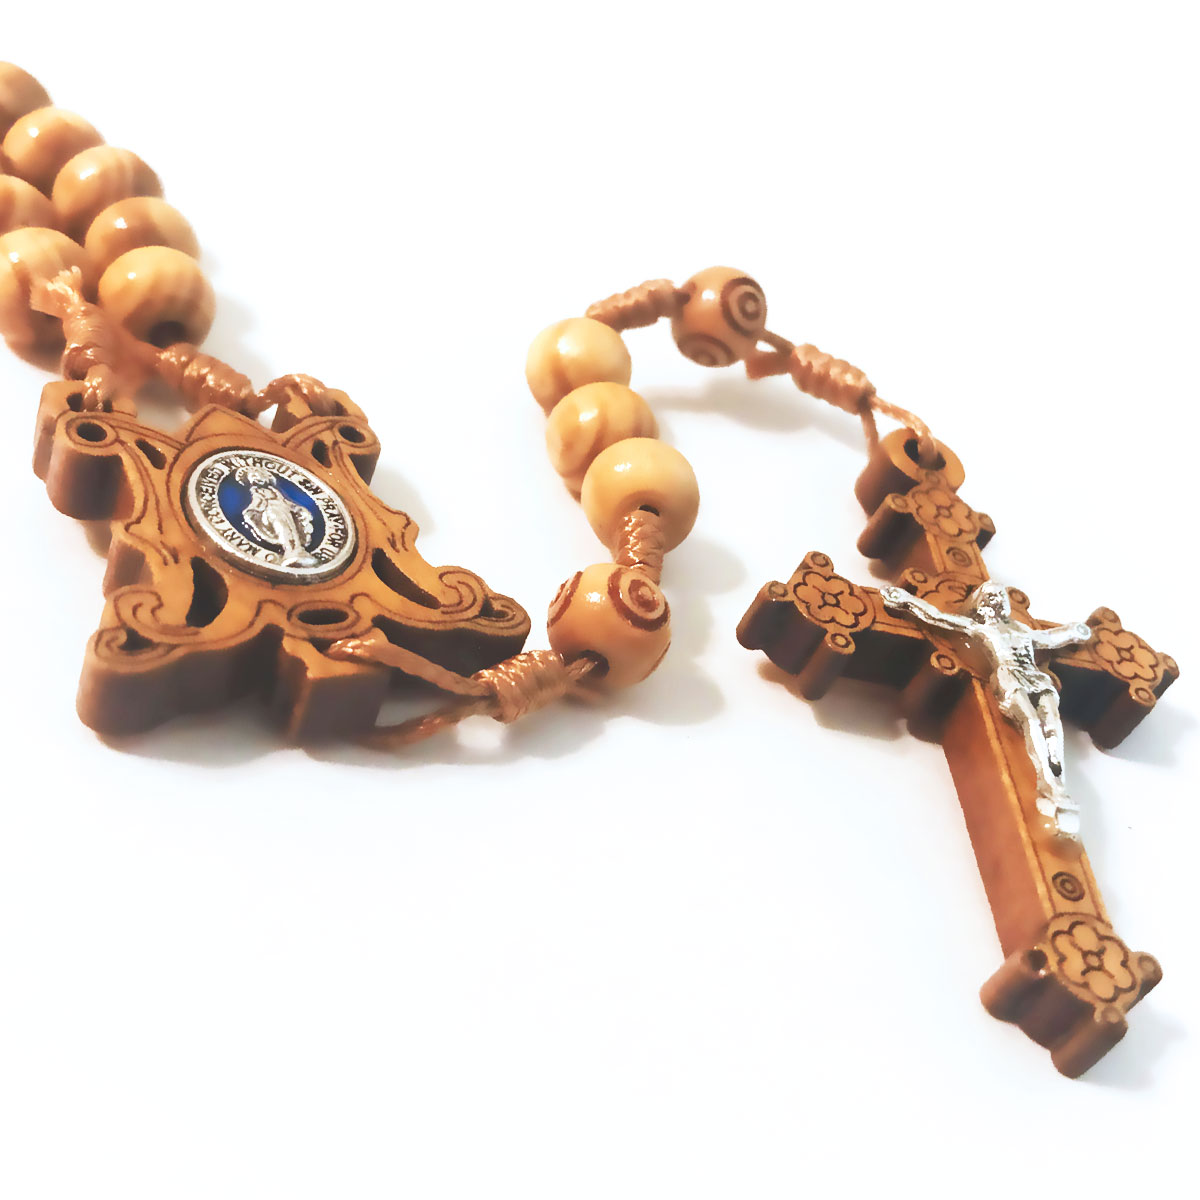 Share and Comment if You Love This Beautiful Miraculous Medal Cord Rosary.  Order Here:   #catholics #catholic #catholicism #JesusChrist #catholicchurch #Jesus #catholicfaith #catholichurch #church #faith #God #romancatholic #catholiclife #rosary